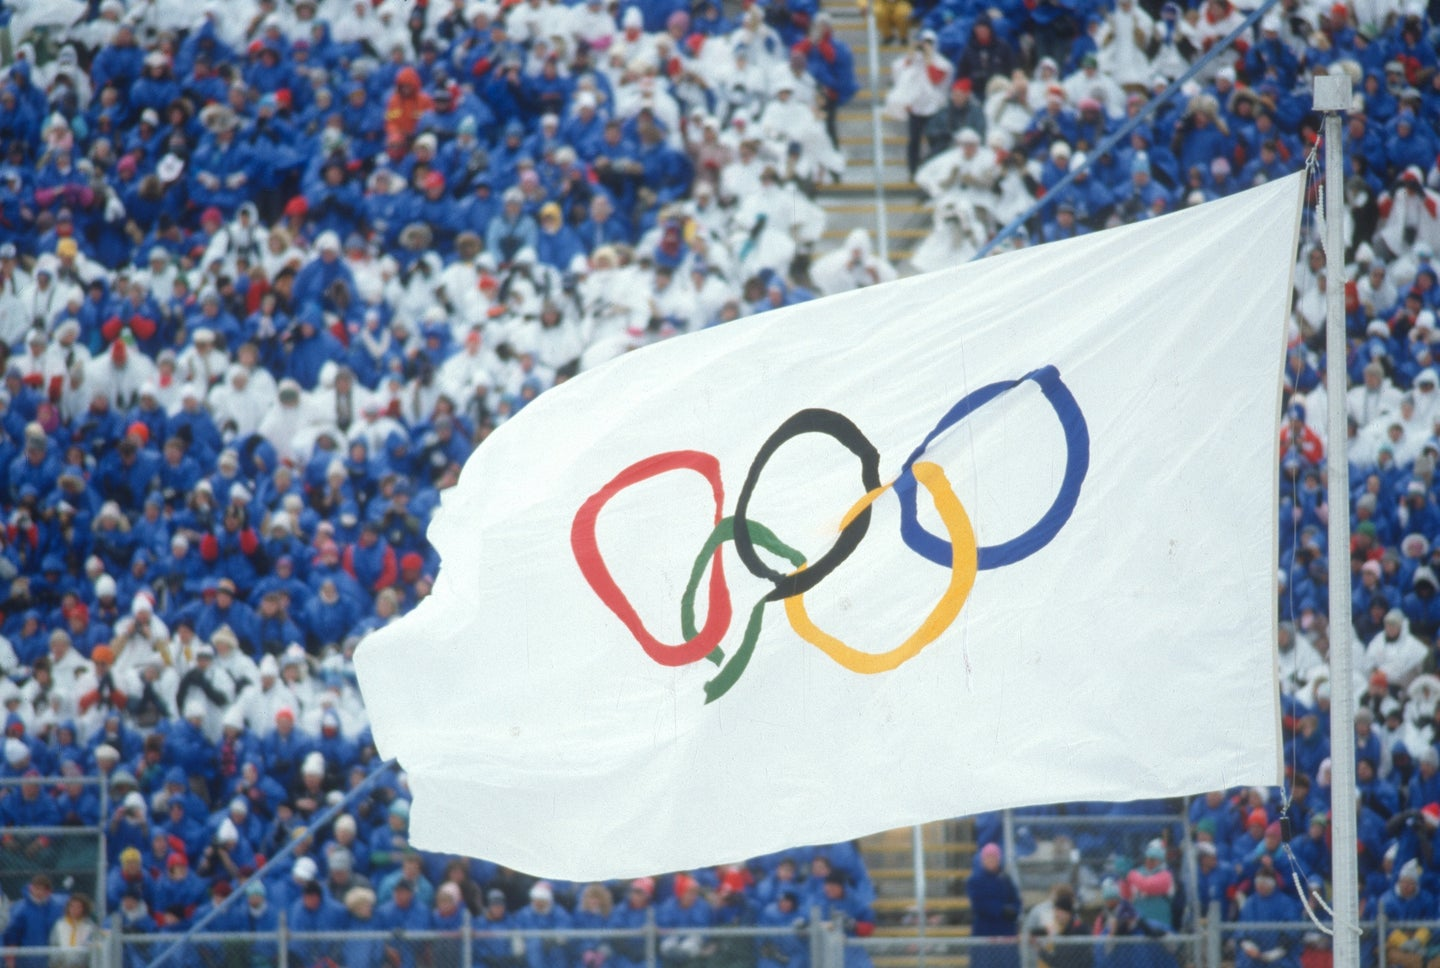 White Olympics five-ring flag flying during the 1988 summer games in Seoul